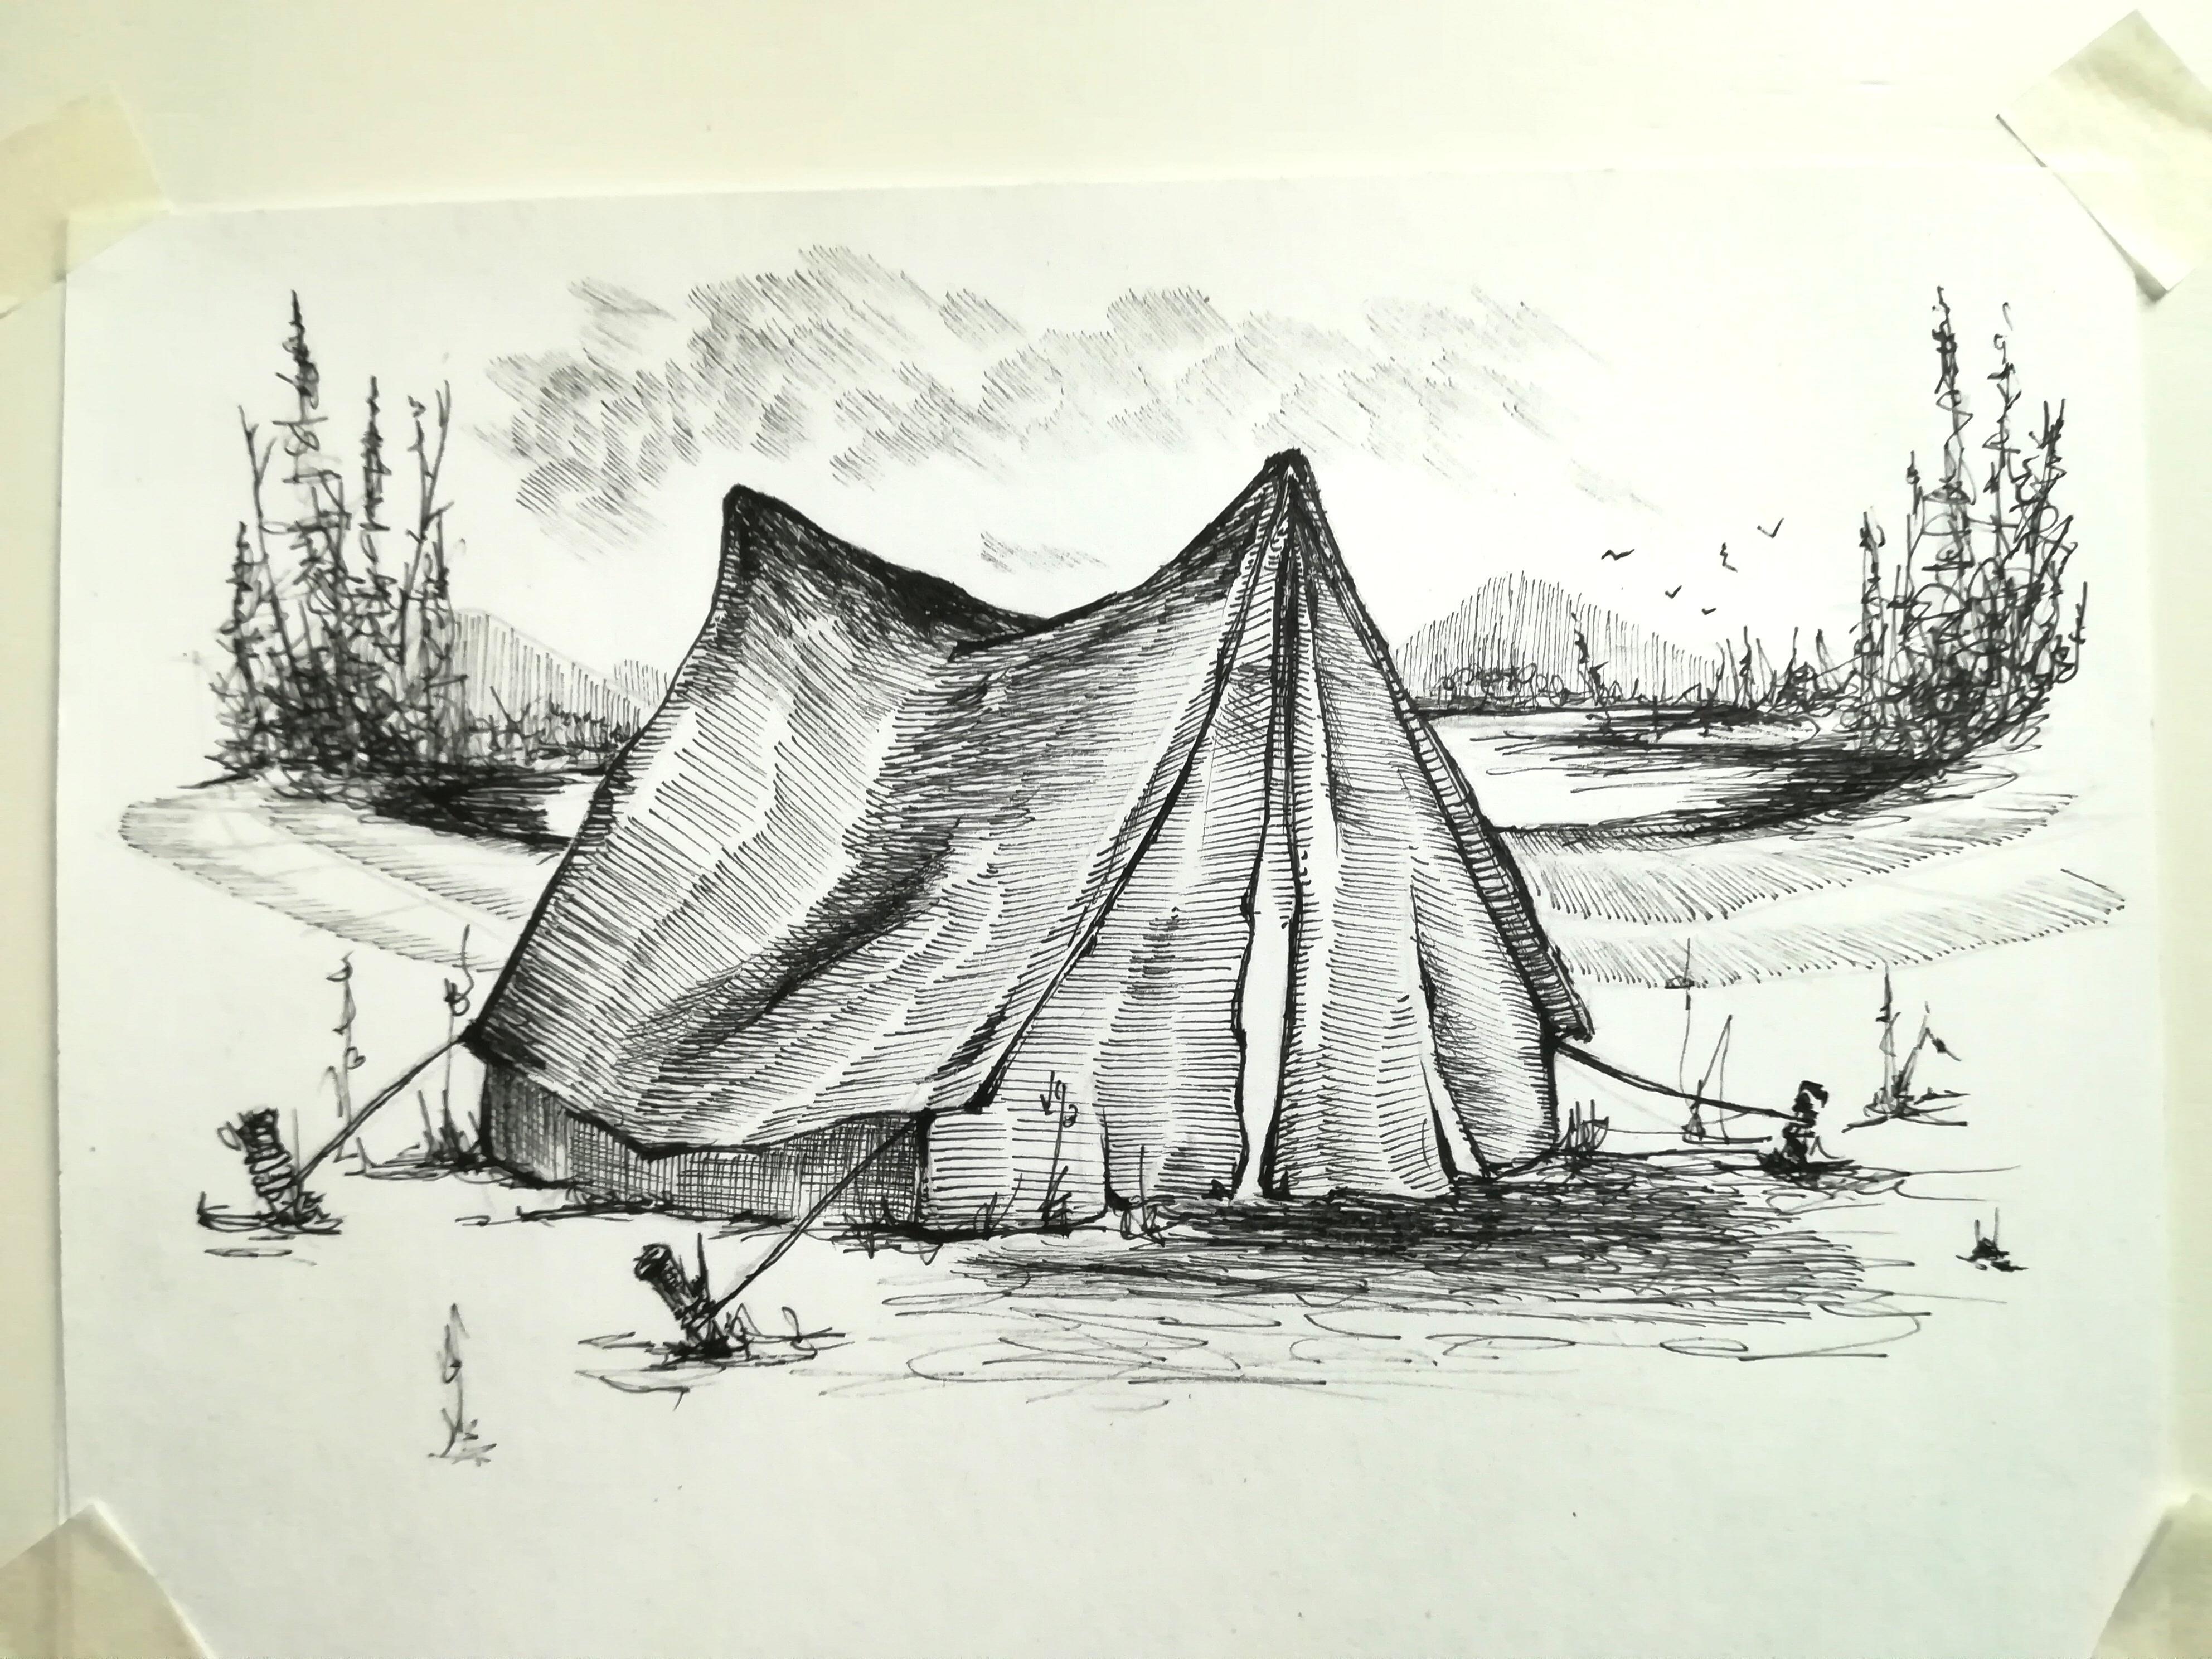 3968x2976 Request. I Would Like To Draw A Special Camping Place For You